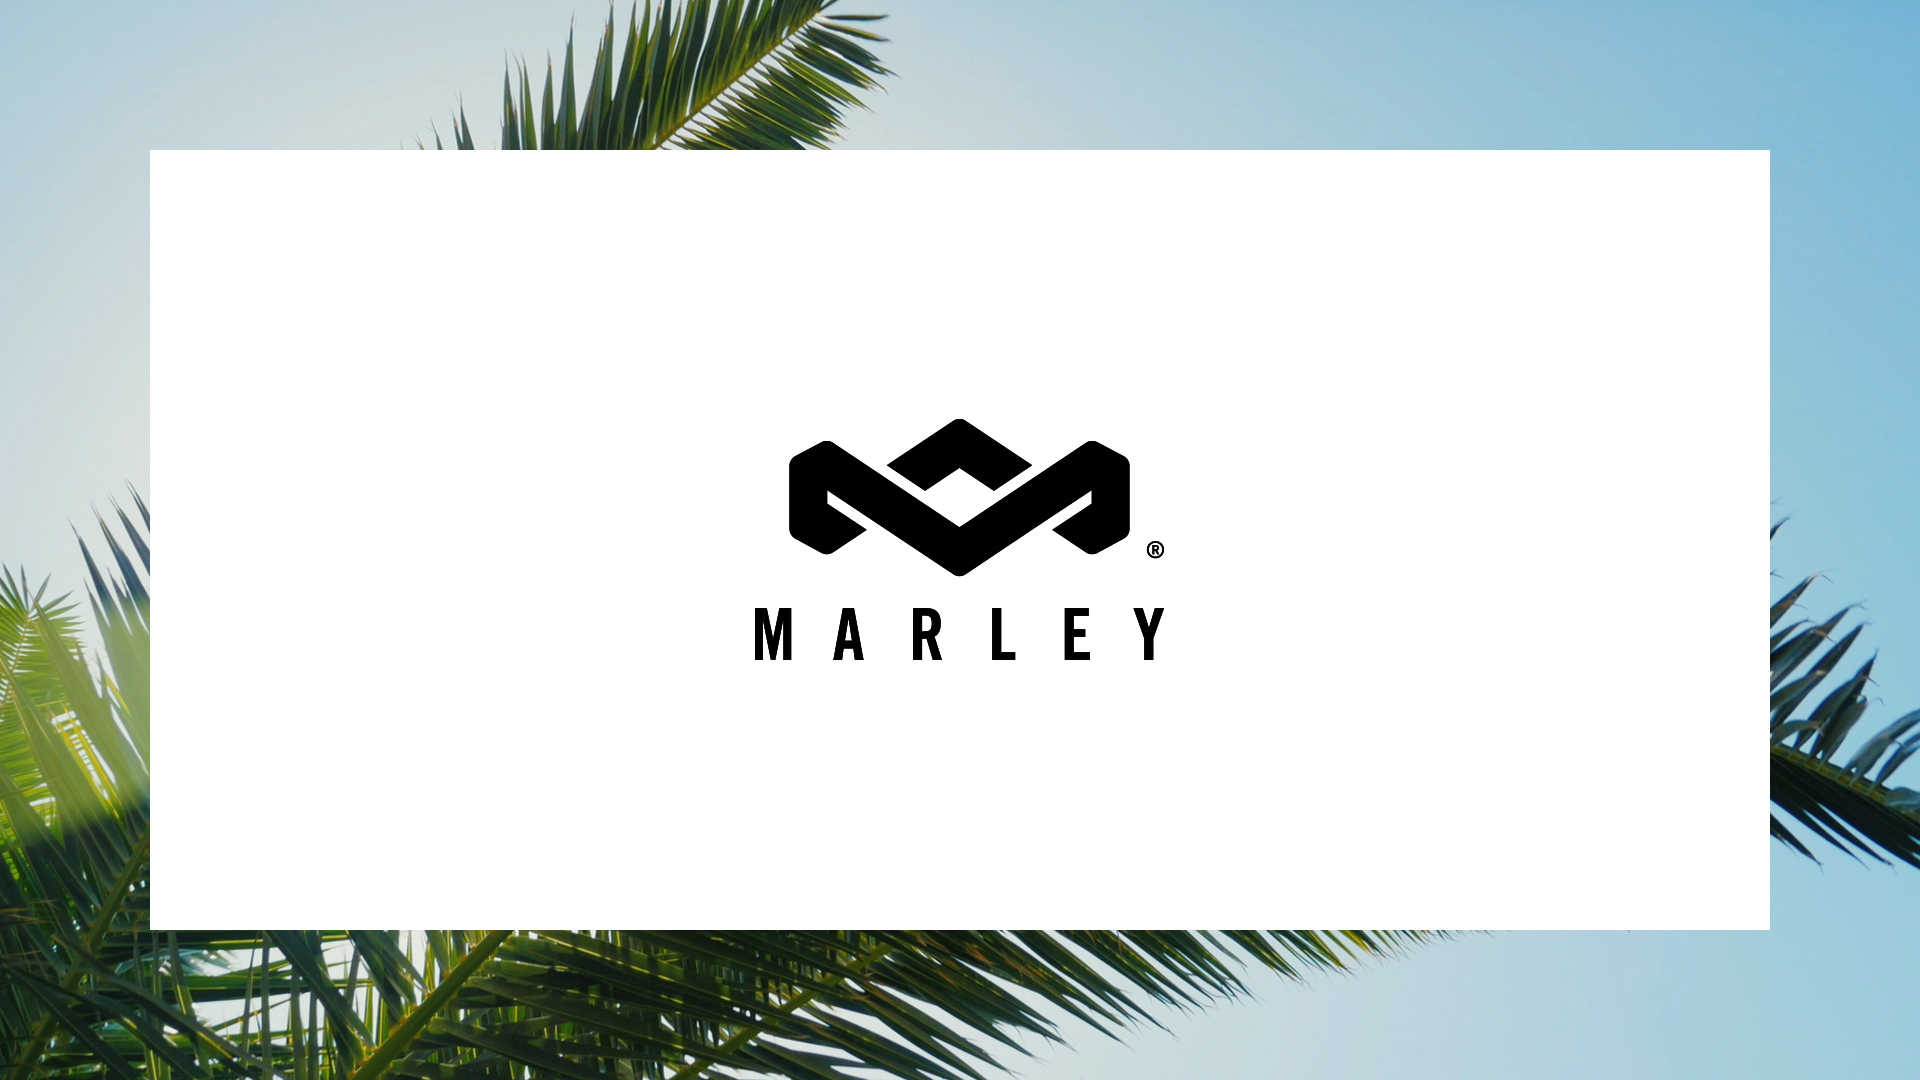 House of Marley    Brand toolkit Cross-Platform Packaging | Design, Animation, Editoriral   View